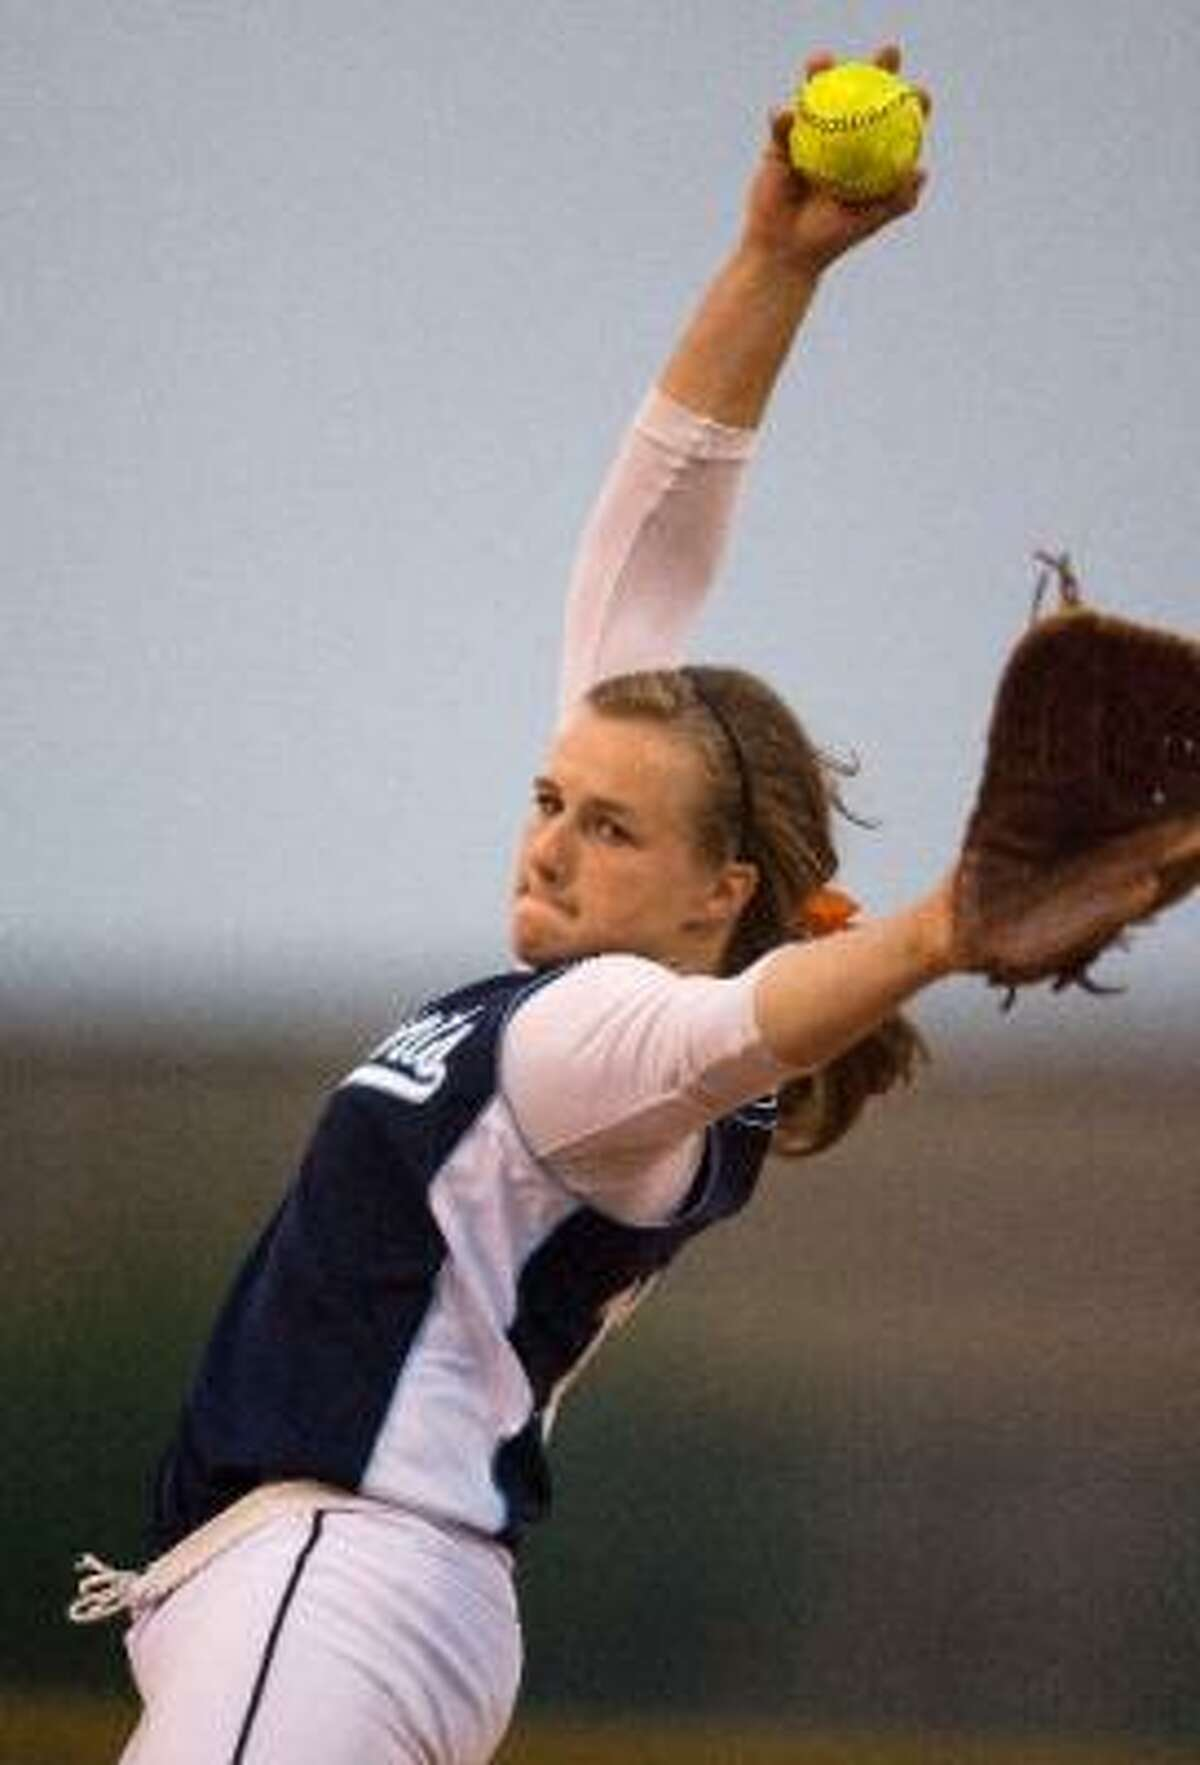 Clements pitcher Liz Paul recorded her 200th strikeout in Thursday's game, but was roughed up in the fifth en route to the 5-1 loss.